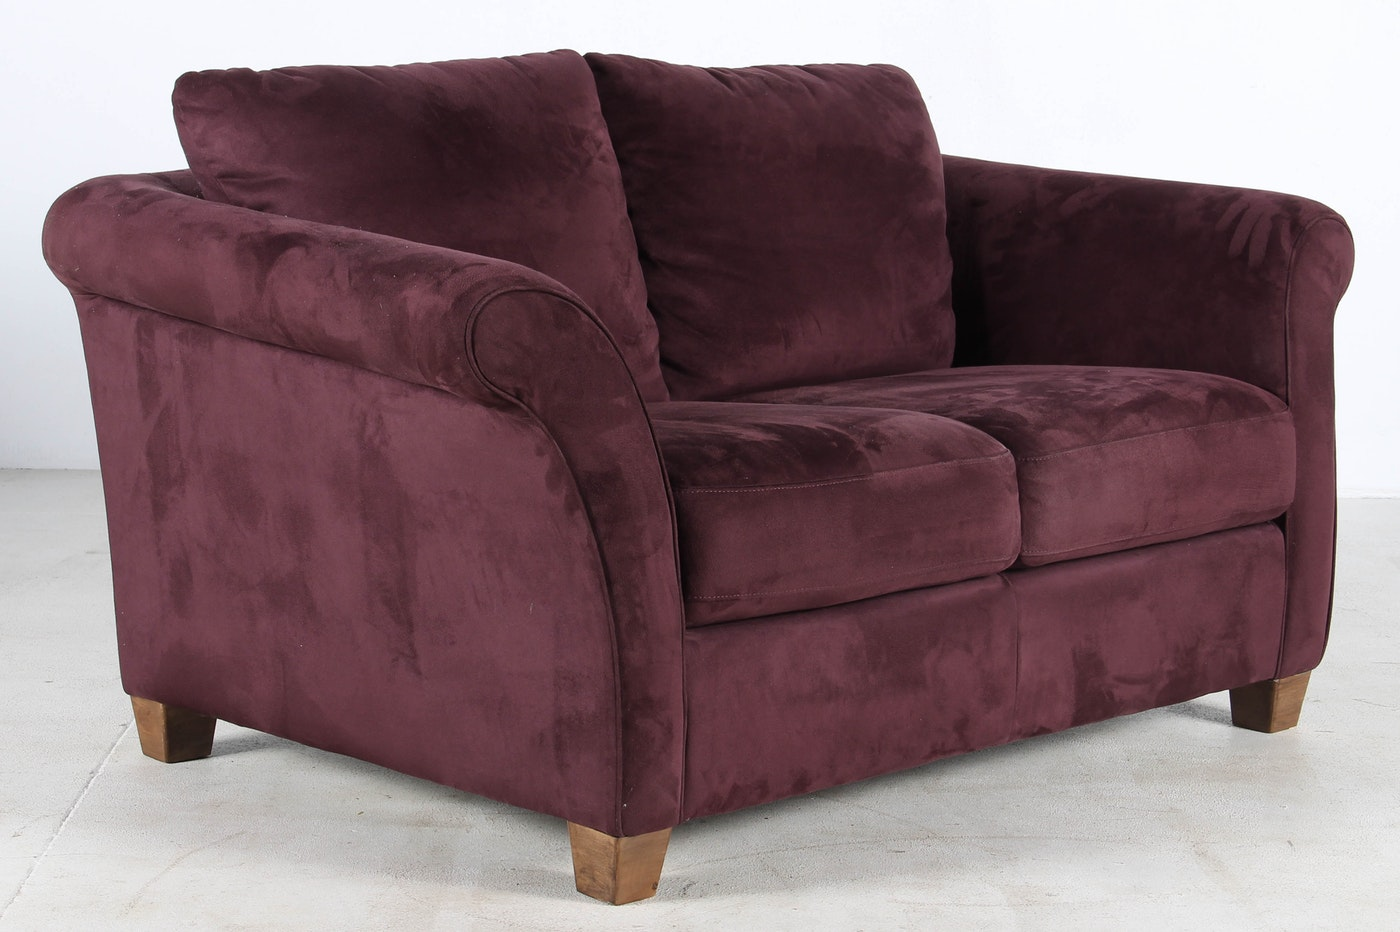 Italsofa Purple Suede Loveseat And Ottoman Ebth